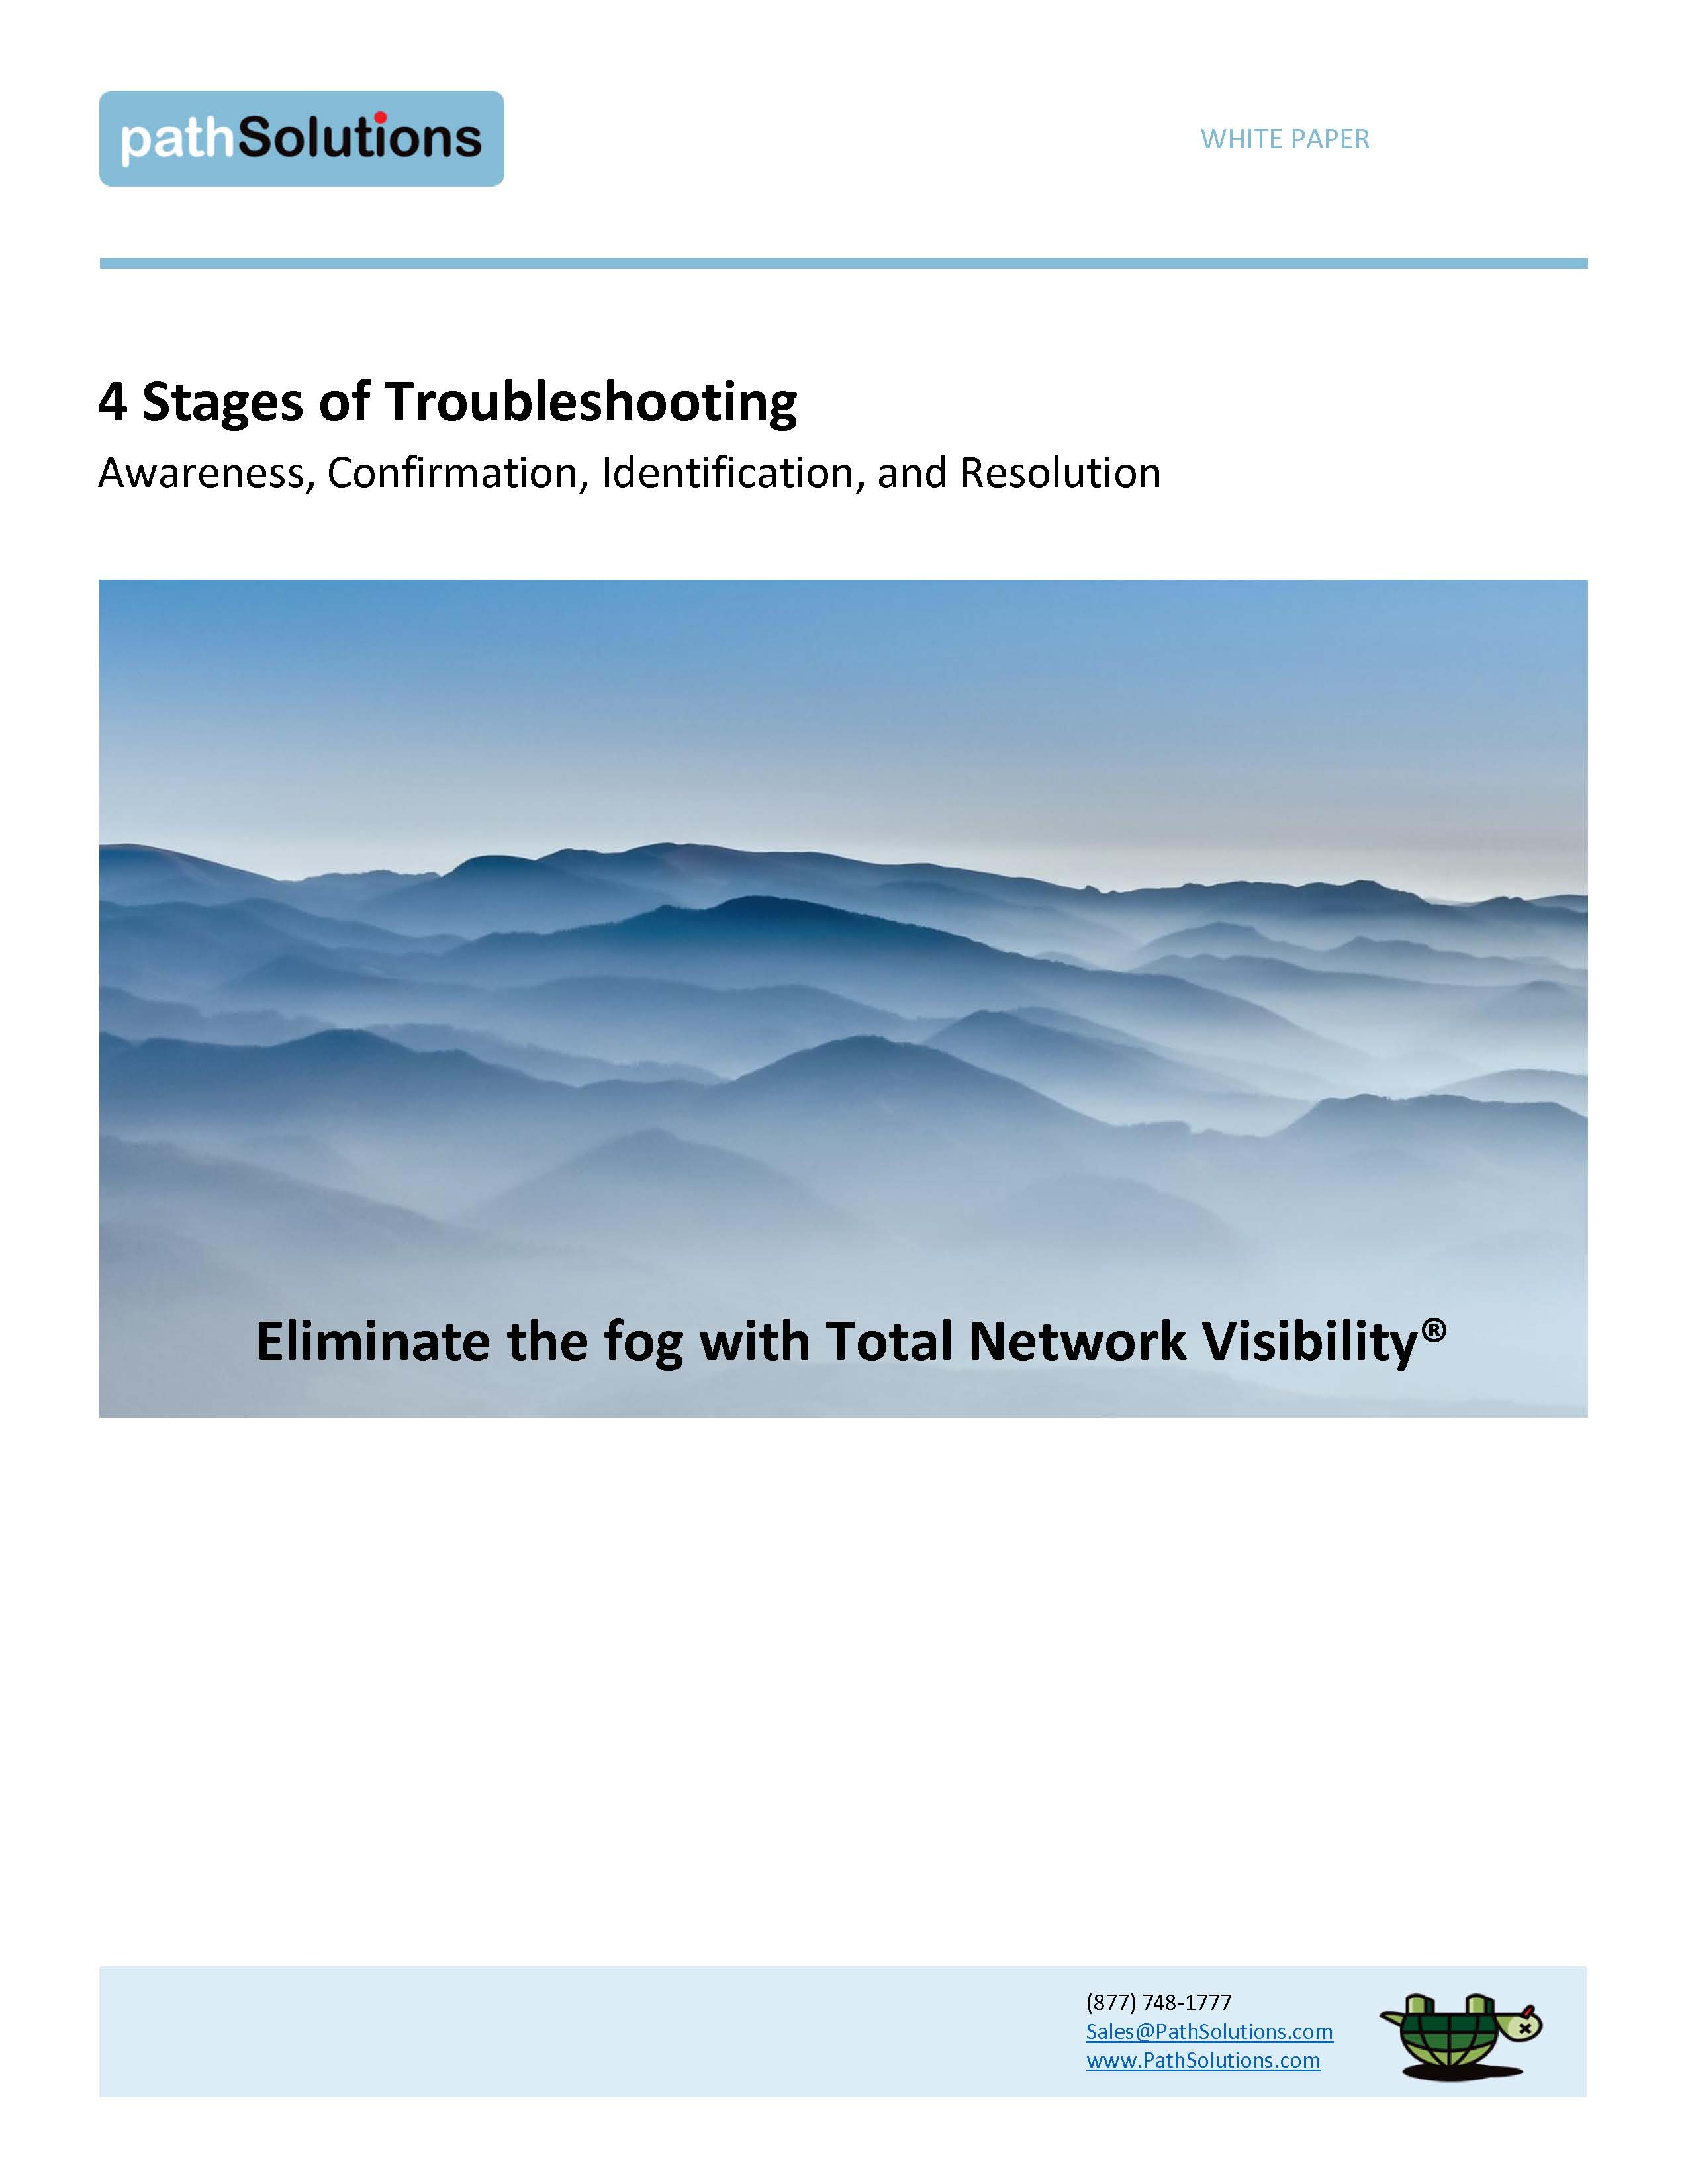 4 Stages of Troubleshooting, white paper p1